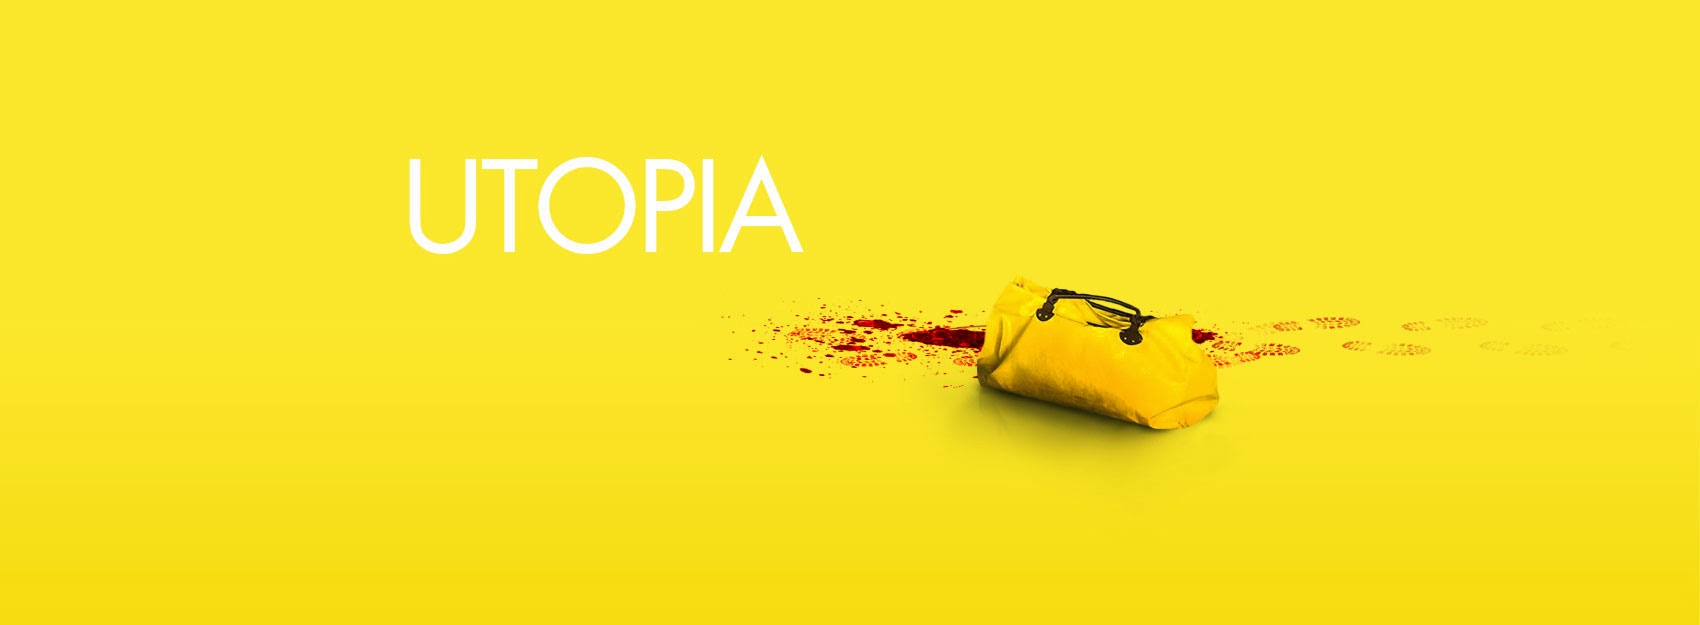 Utopia 2x04 Vose Disponible